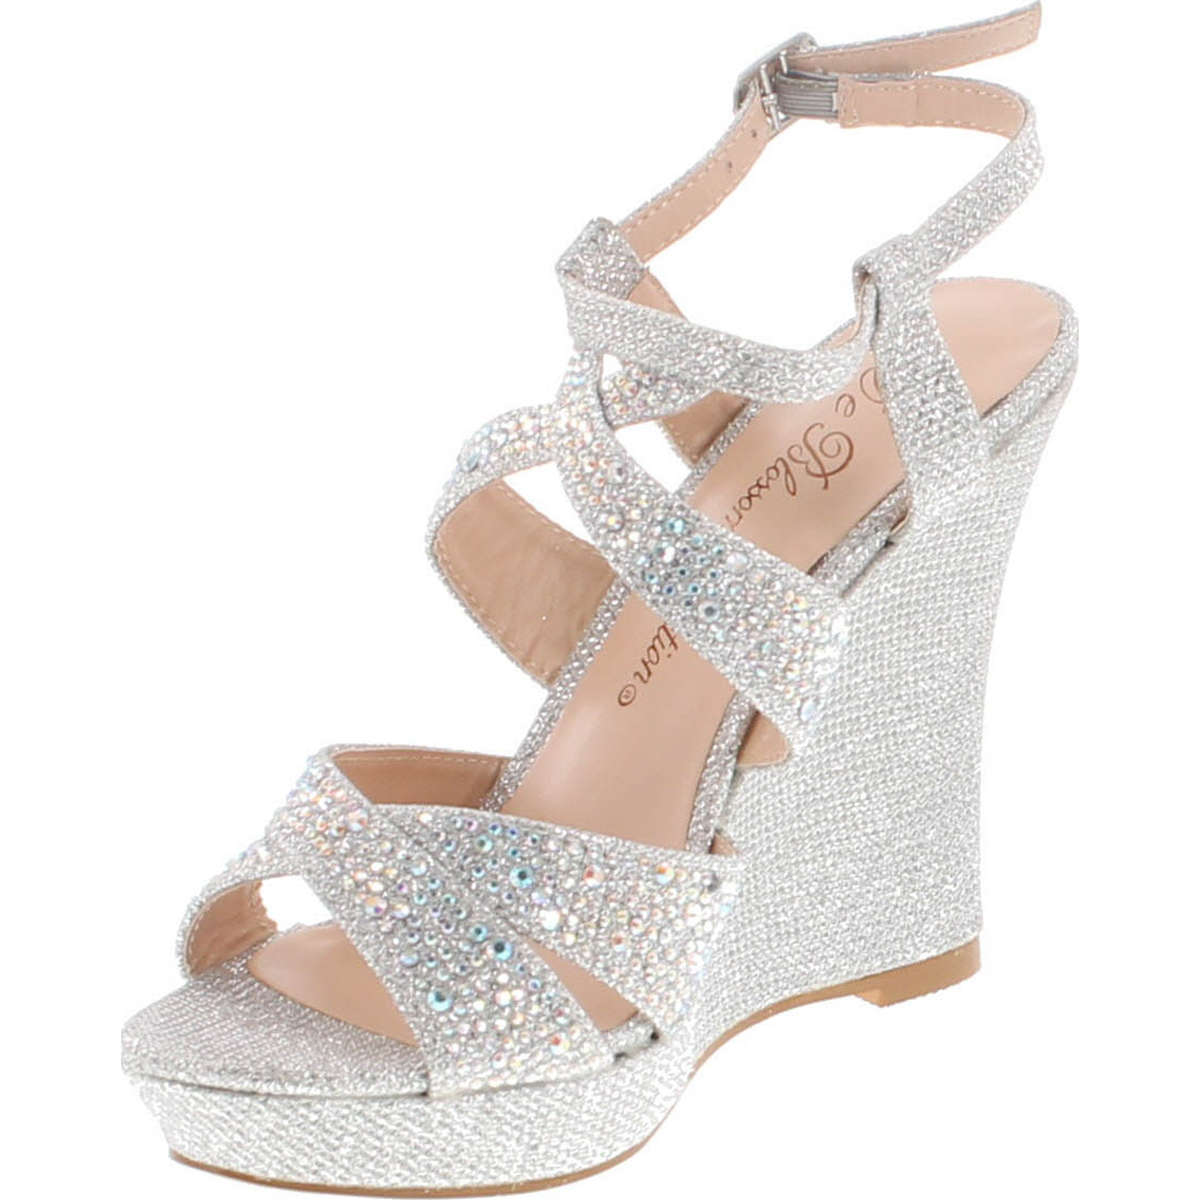 ec918901934c Static Footwear De Blossom Alle-8 High Heel Wedge Sandal With Crystal  Embellishment Style Balle8